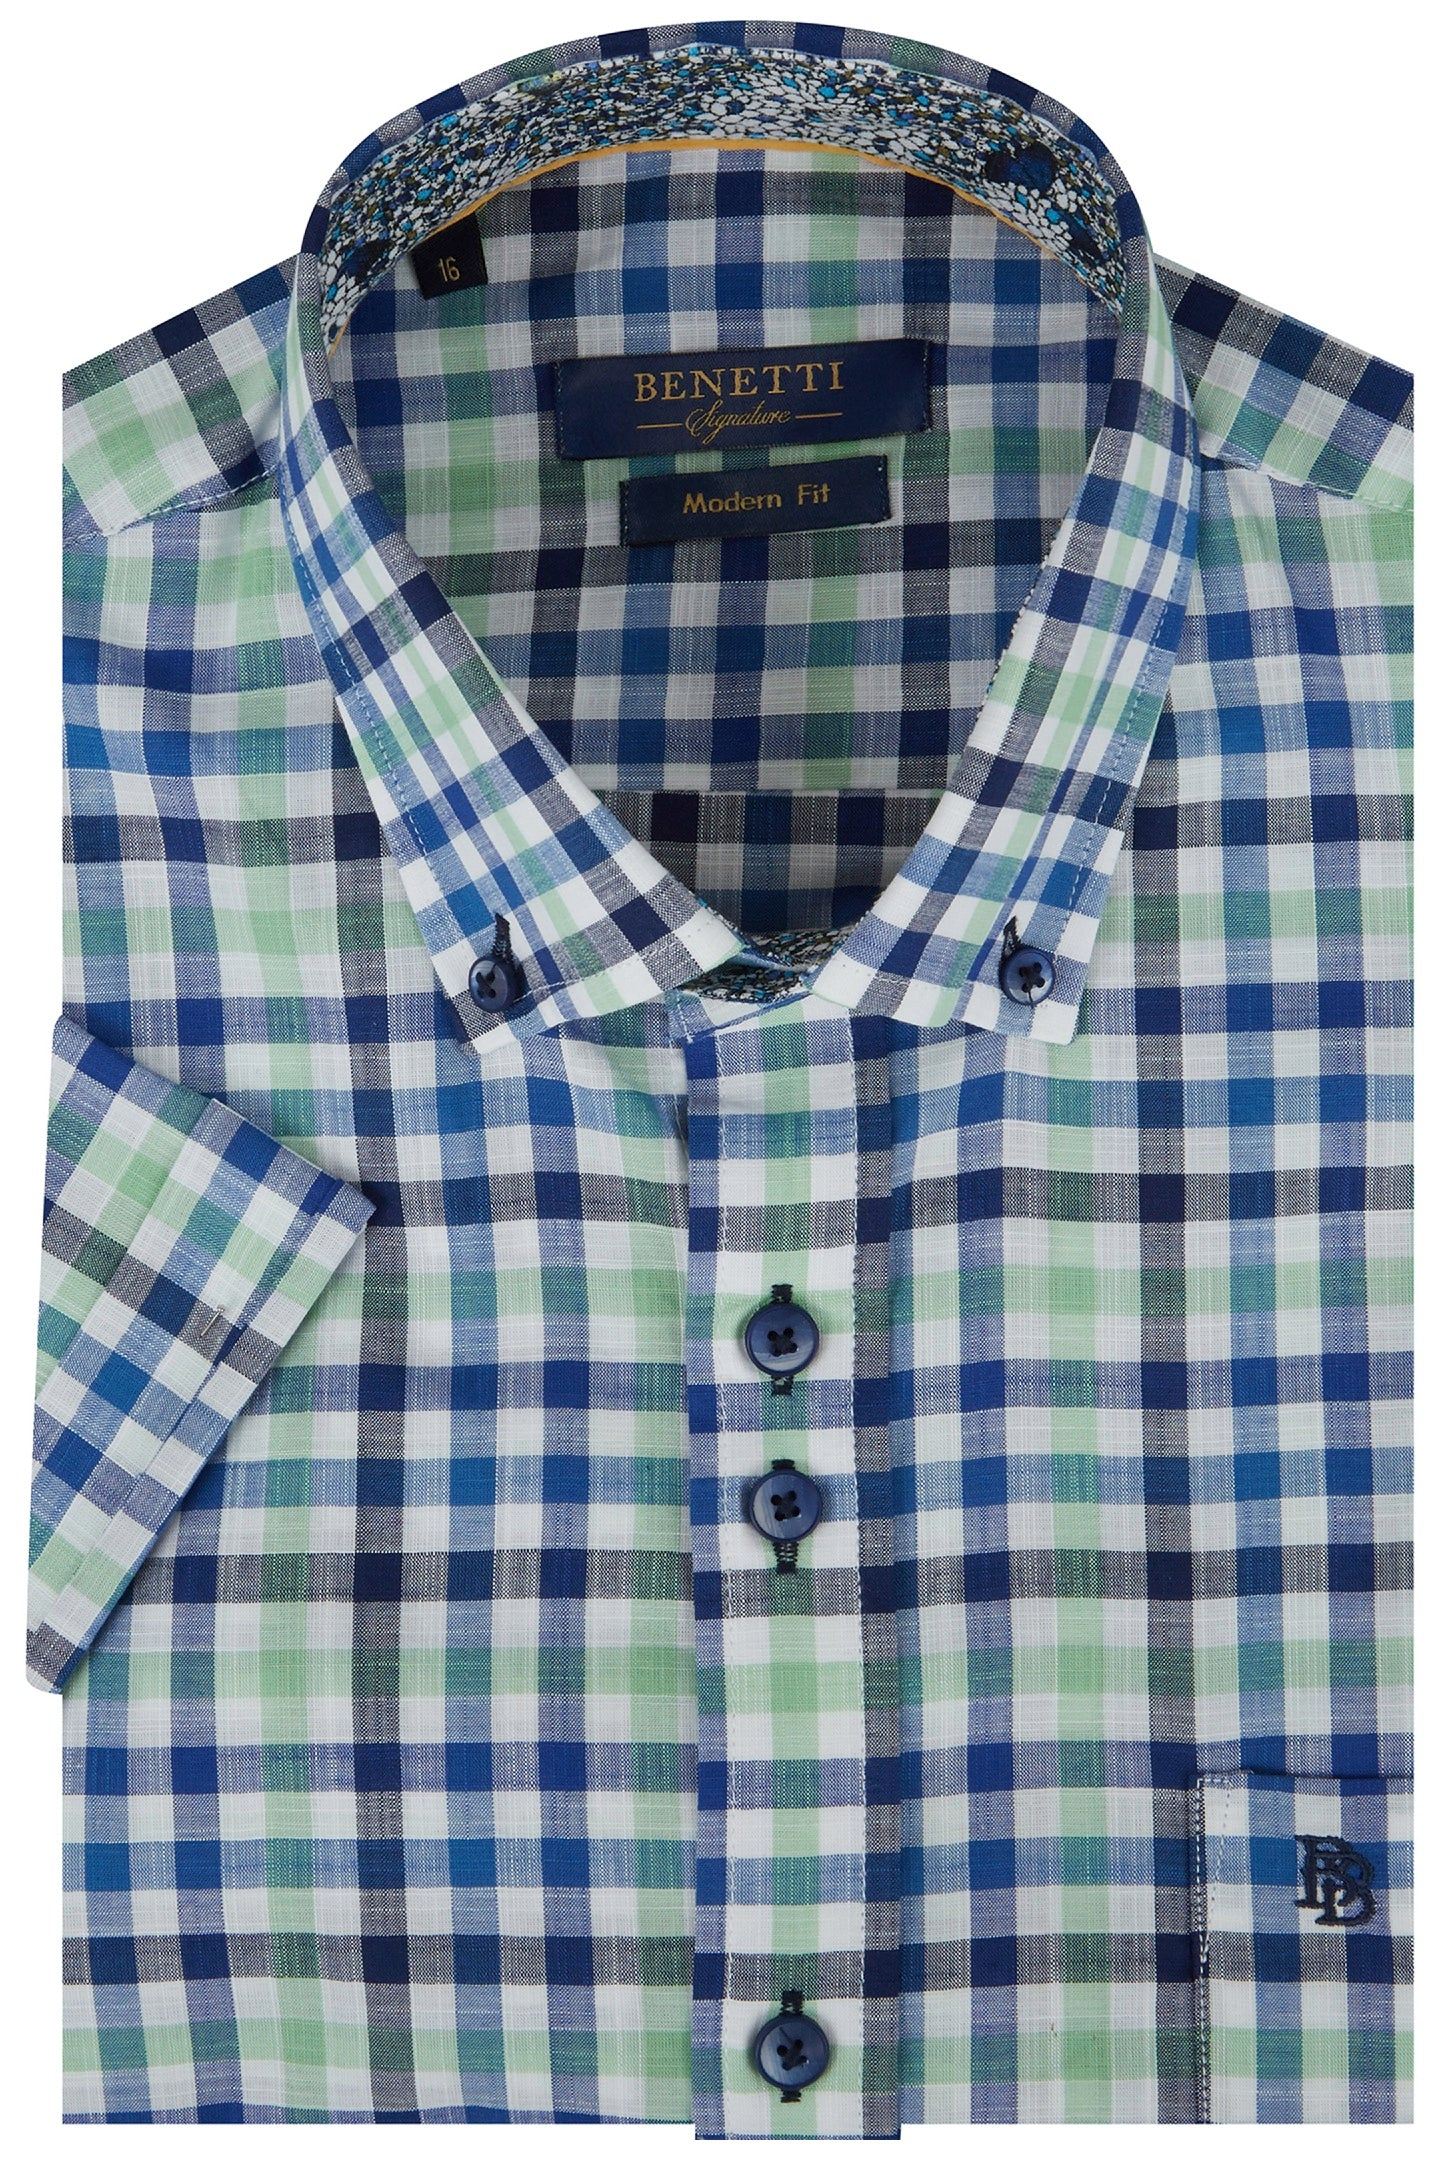 Benetti Gary Short Sleeve Shirt